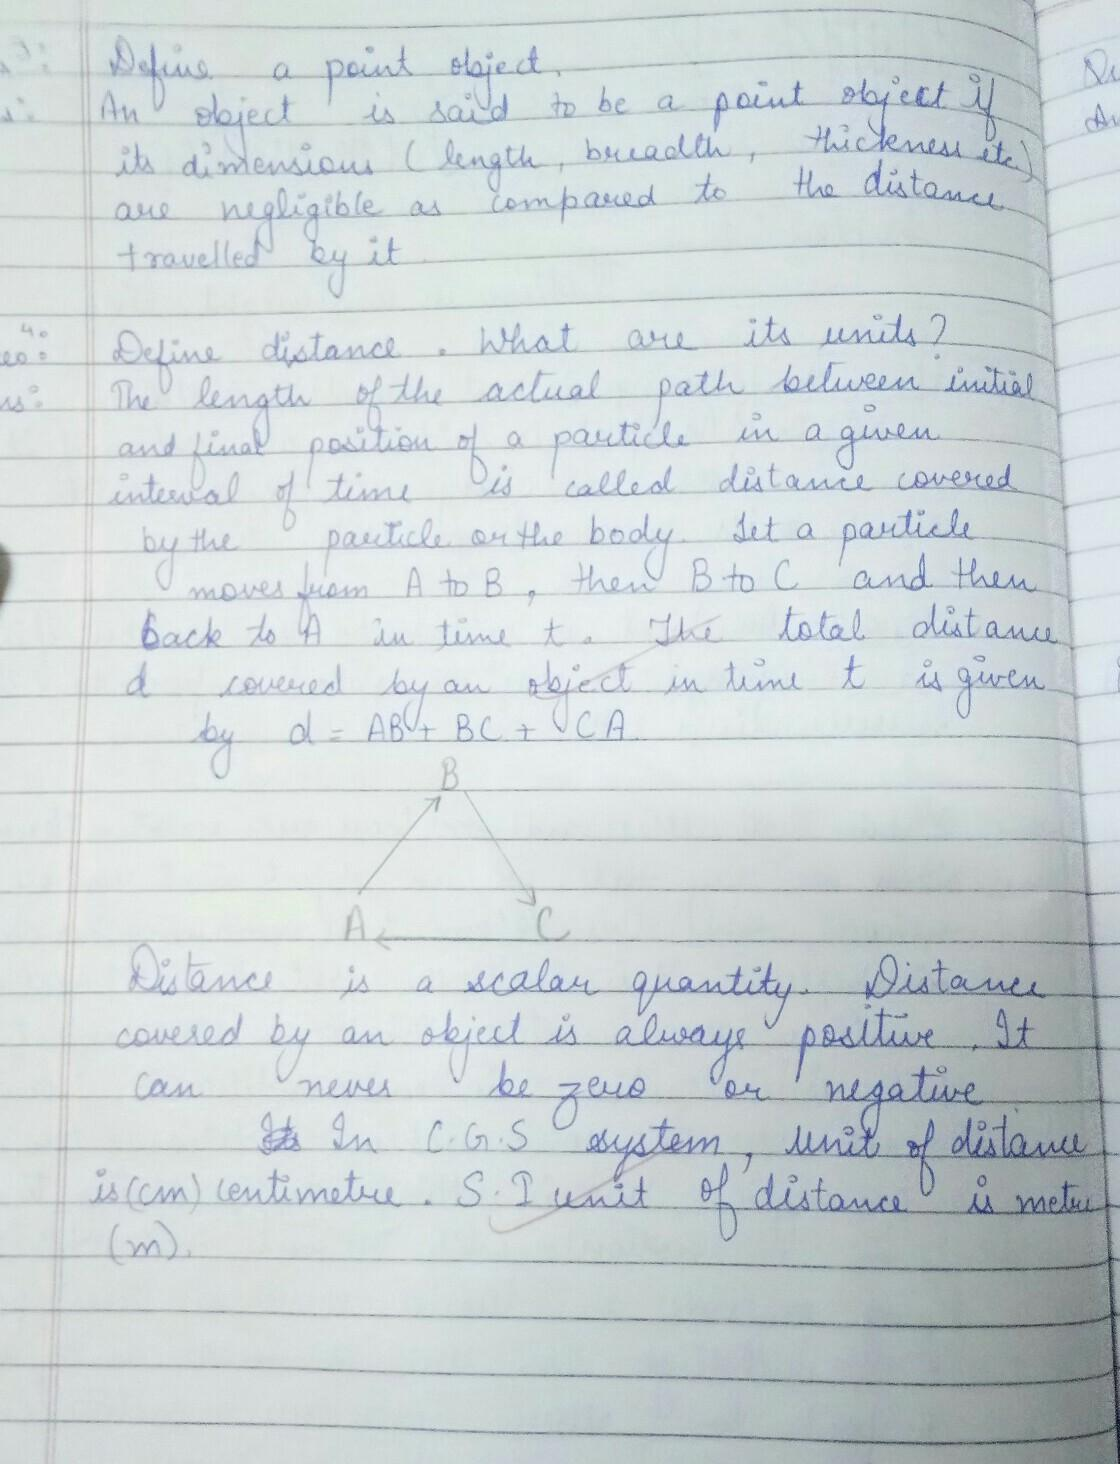 CLASS 11 CH 3 PHYSICS NOTES ONLY HANDWRITTEN - Brainly in